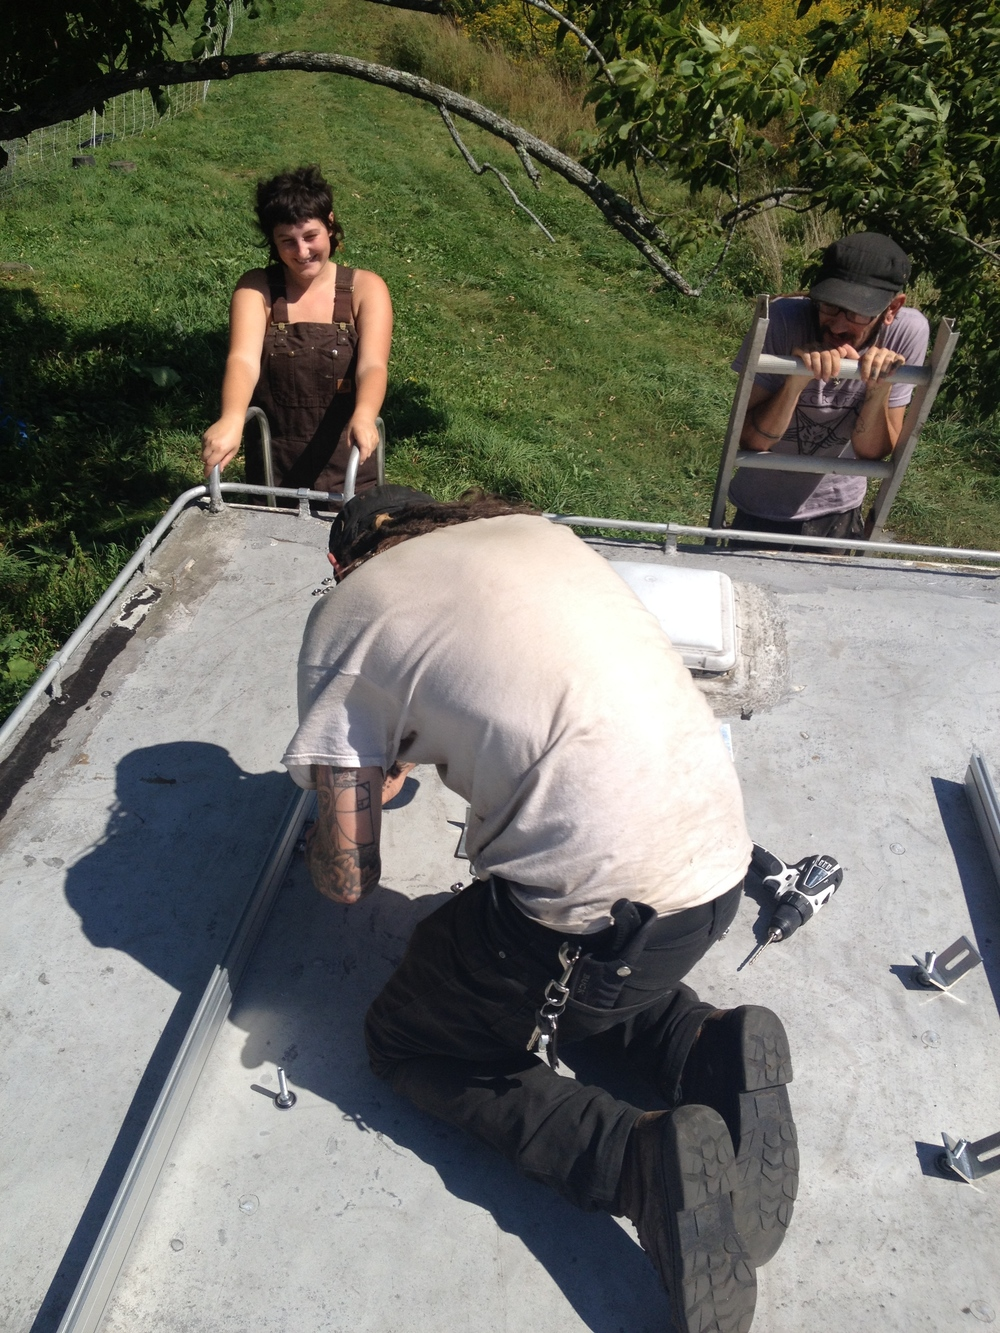 travis and i were on the roof assembling while emma and wally hung out on the ladders.  wally made a good joke about how it felt like a city job, two people working, two people watching.